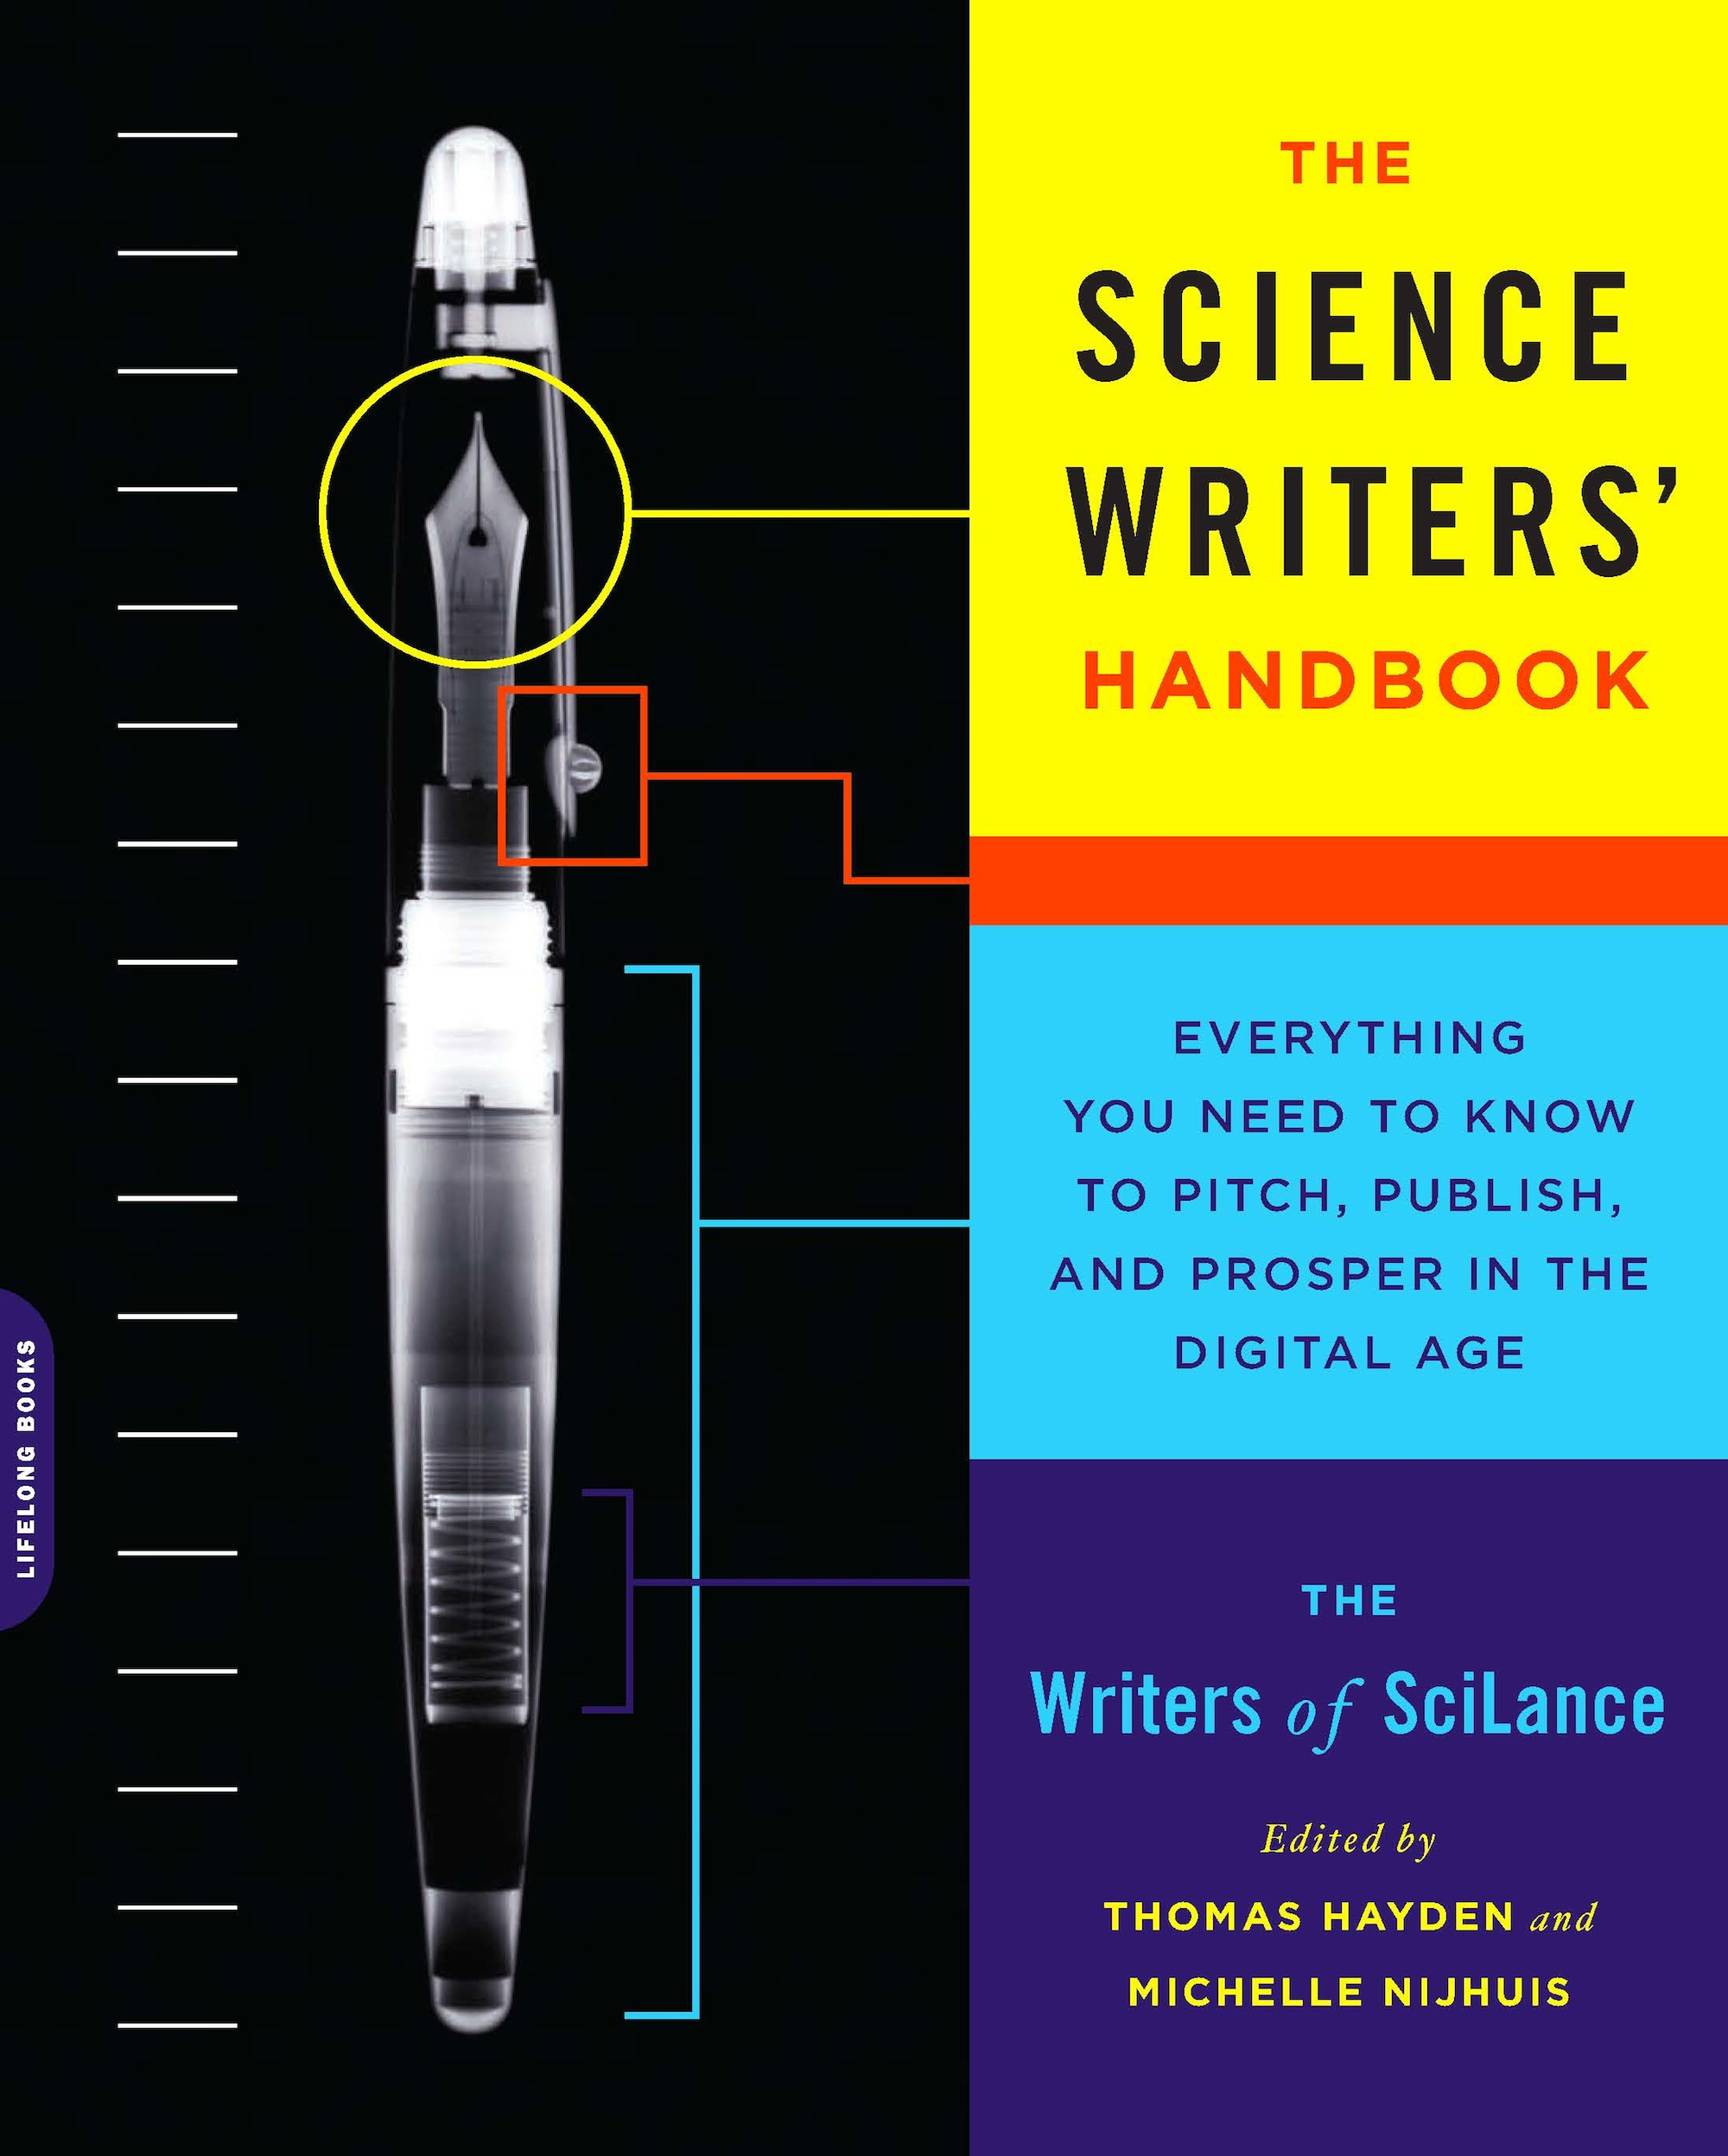 The Science Writers' Handbook